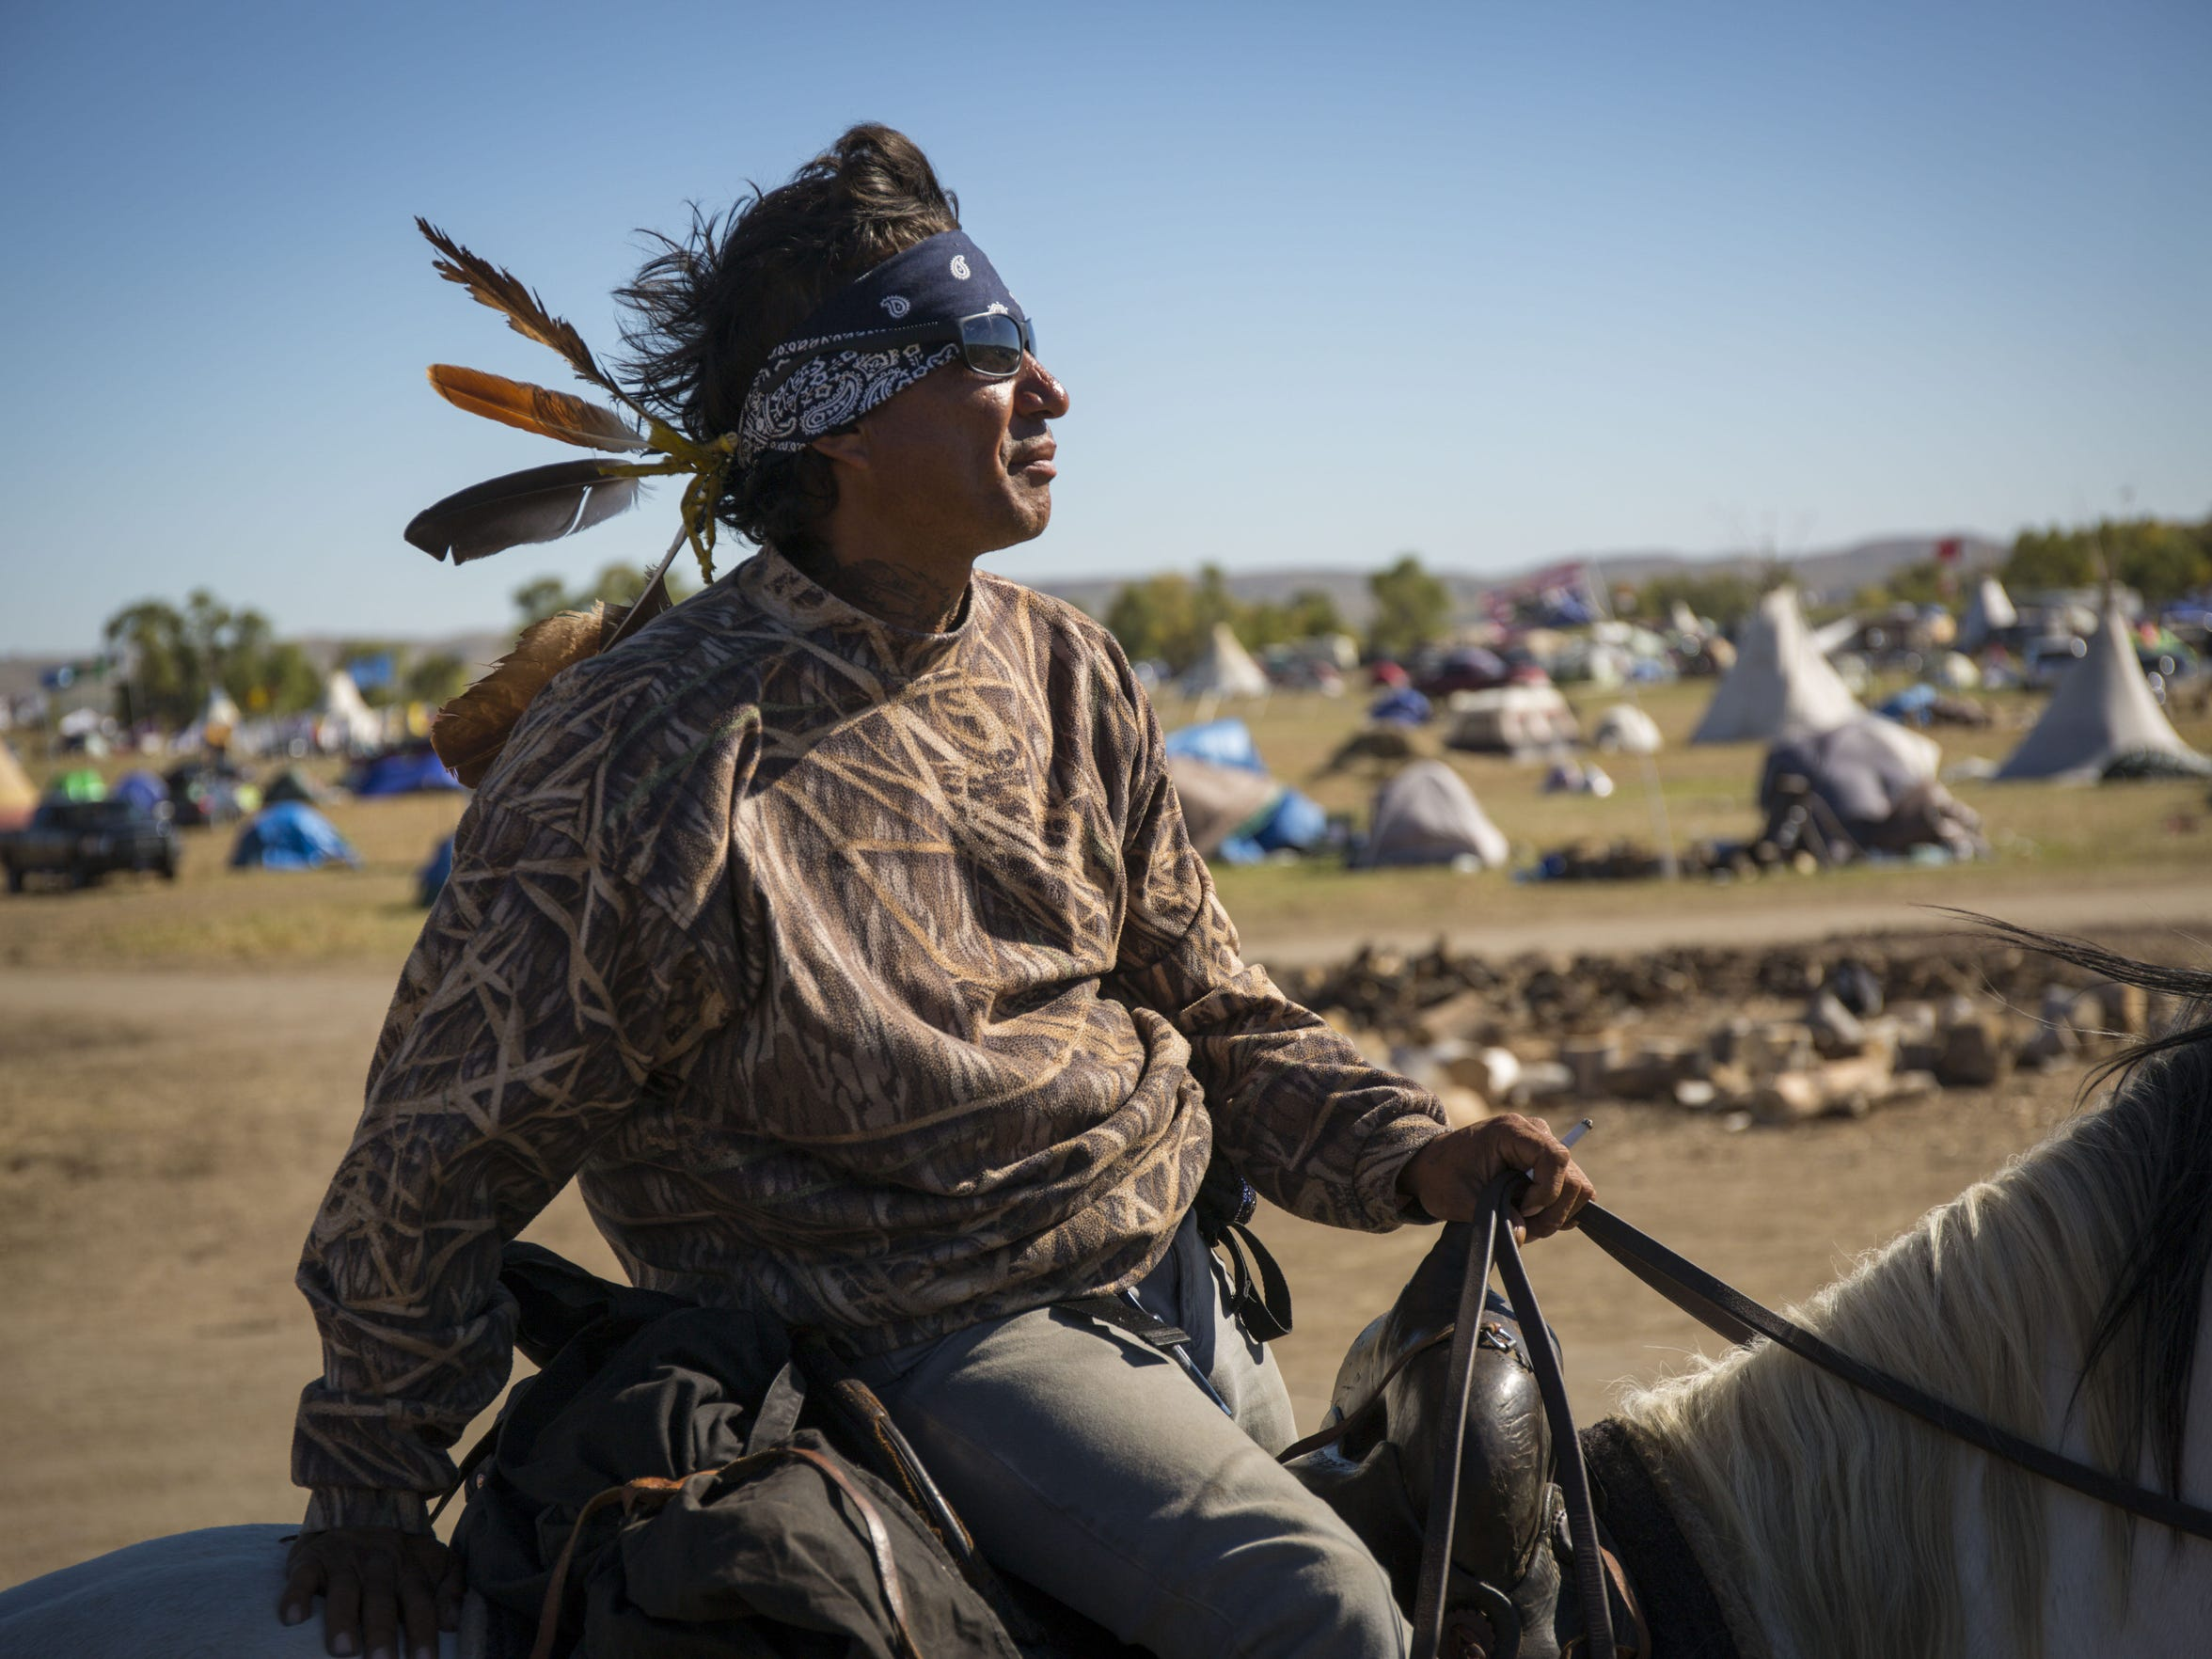 Frank Archambault of the Standing Rock Sioux provides